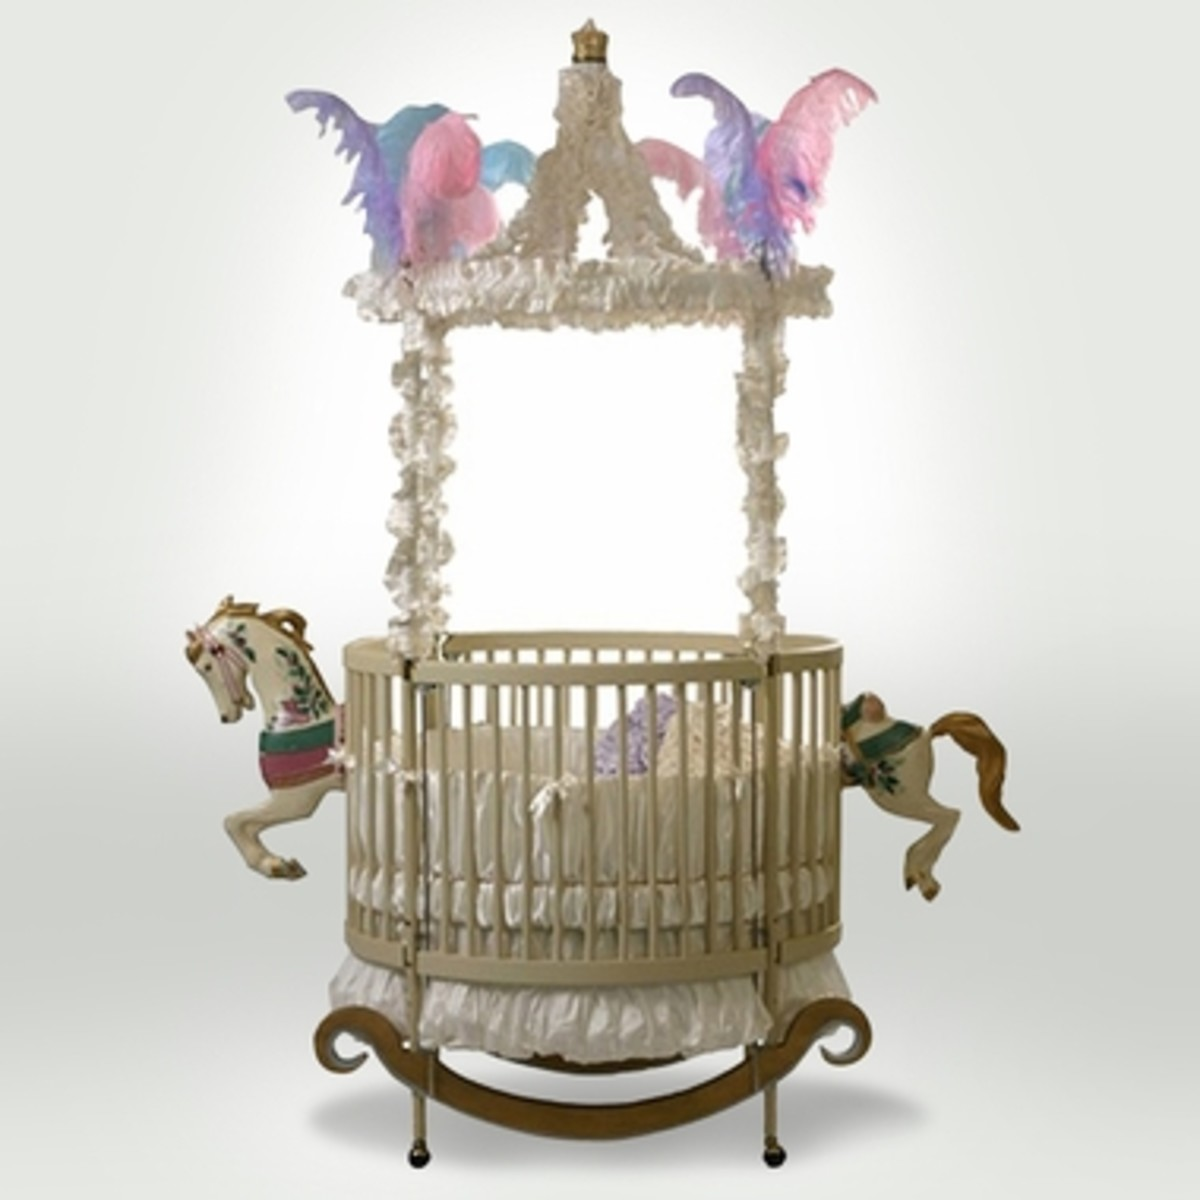 Design a Girl's Dream Bedroom or Nursery With a Carousel Horse Theme